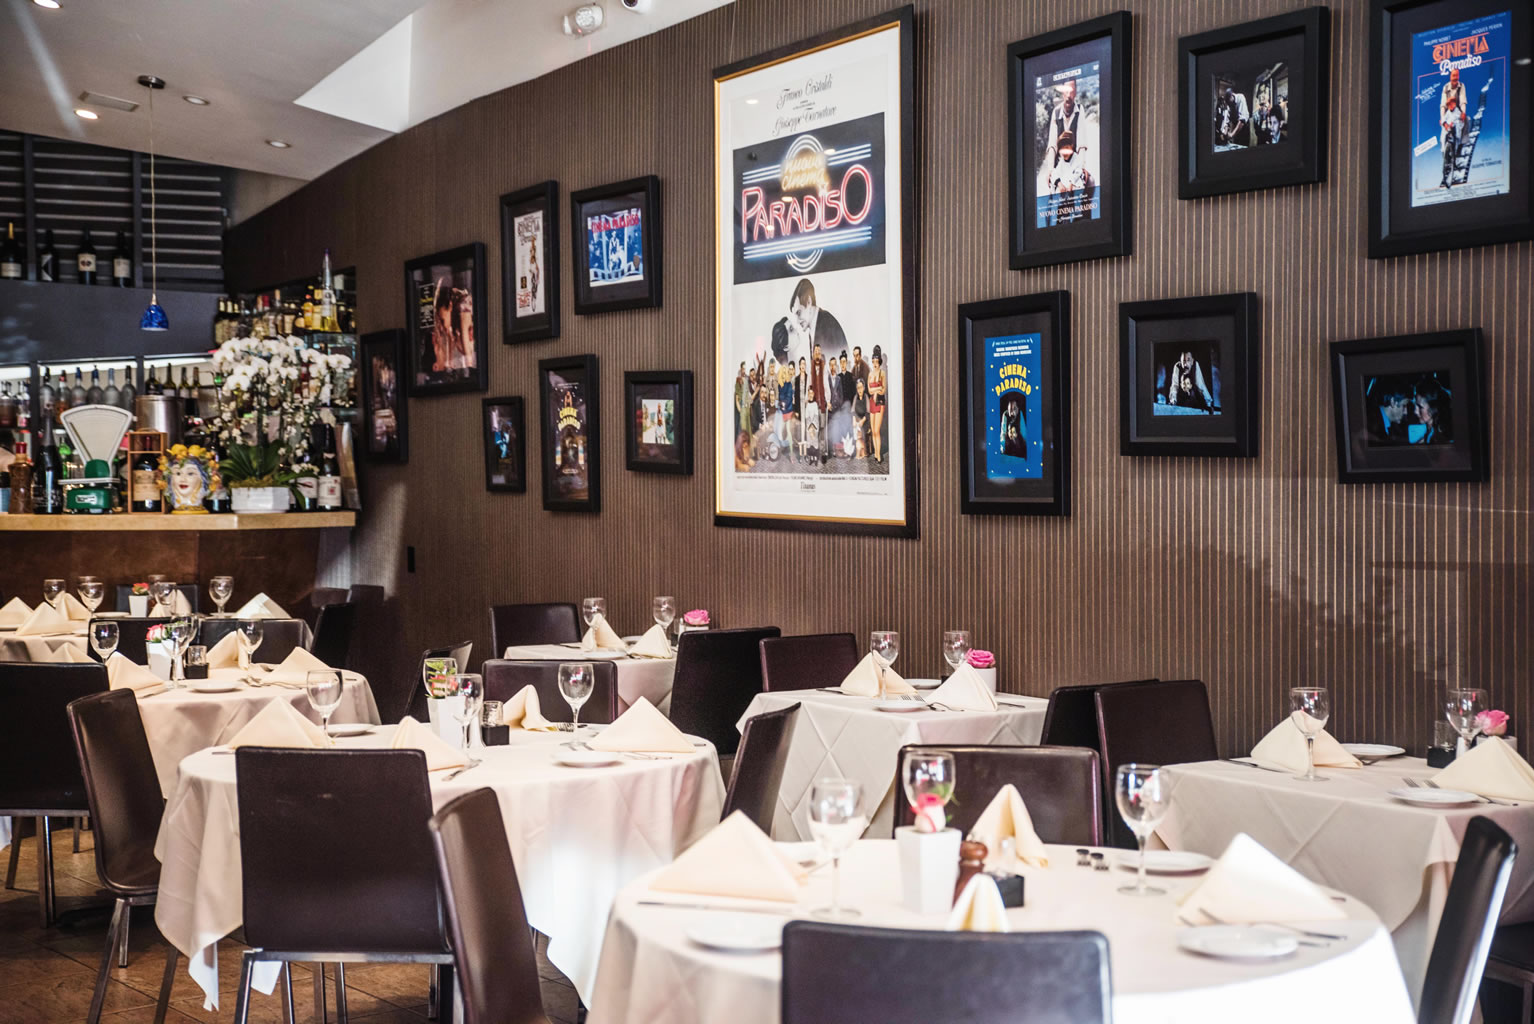 Piccolo Paradiso - Restaurant Dining Setting in Gallery-60428340